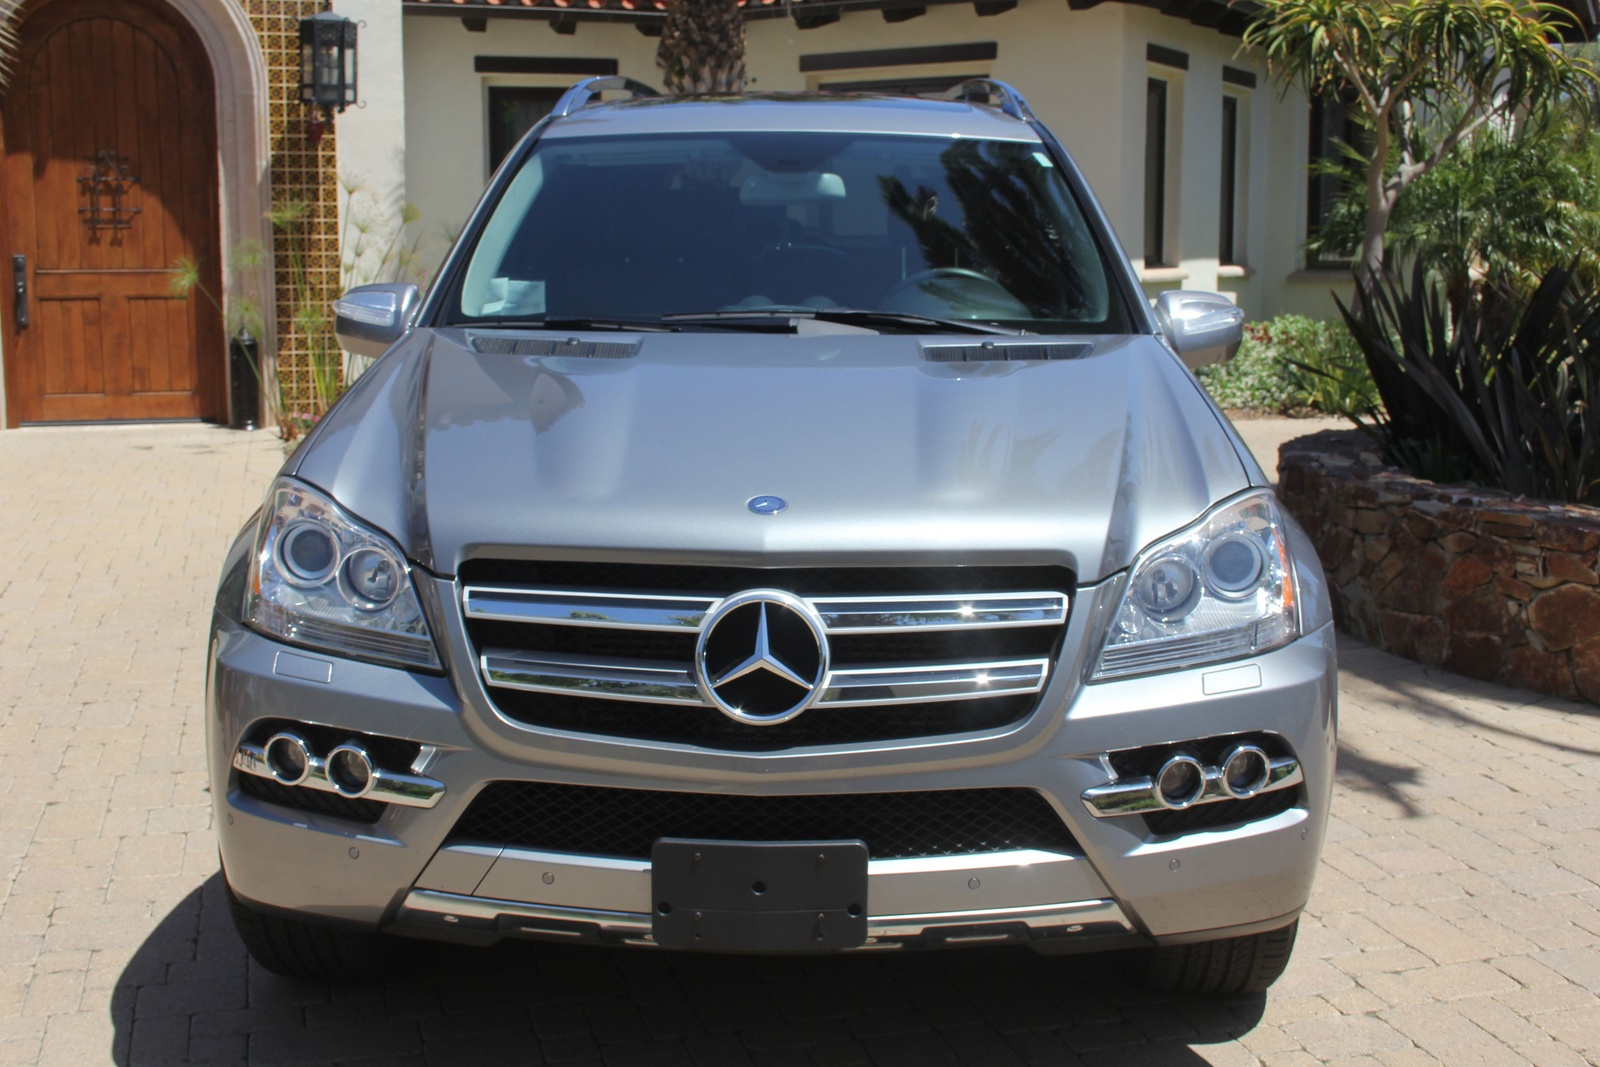 Masina service piese mercedes gl 2010 for Pros and cons of owning a mercedes benz